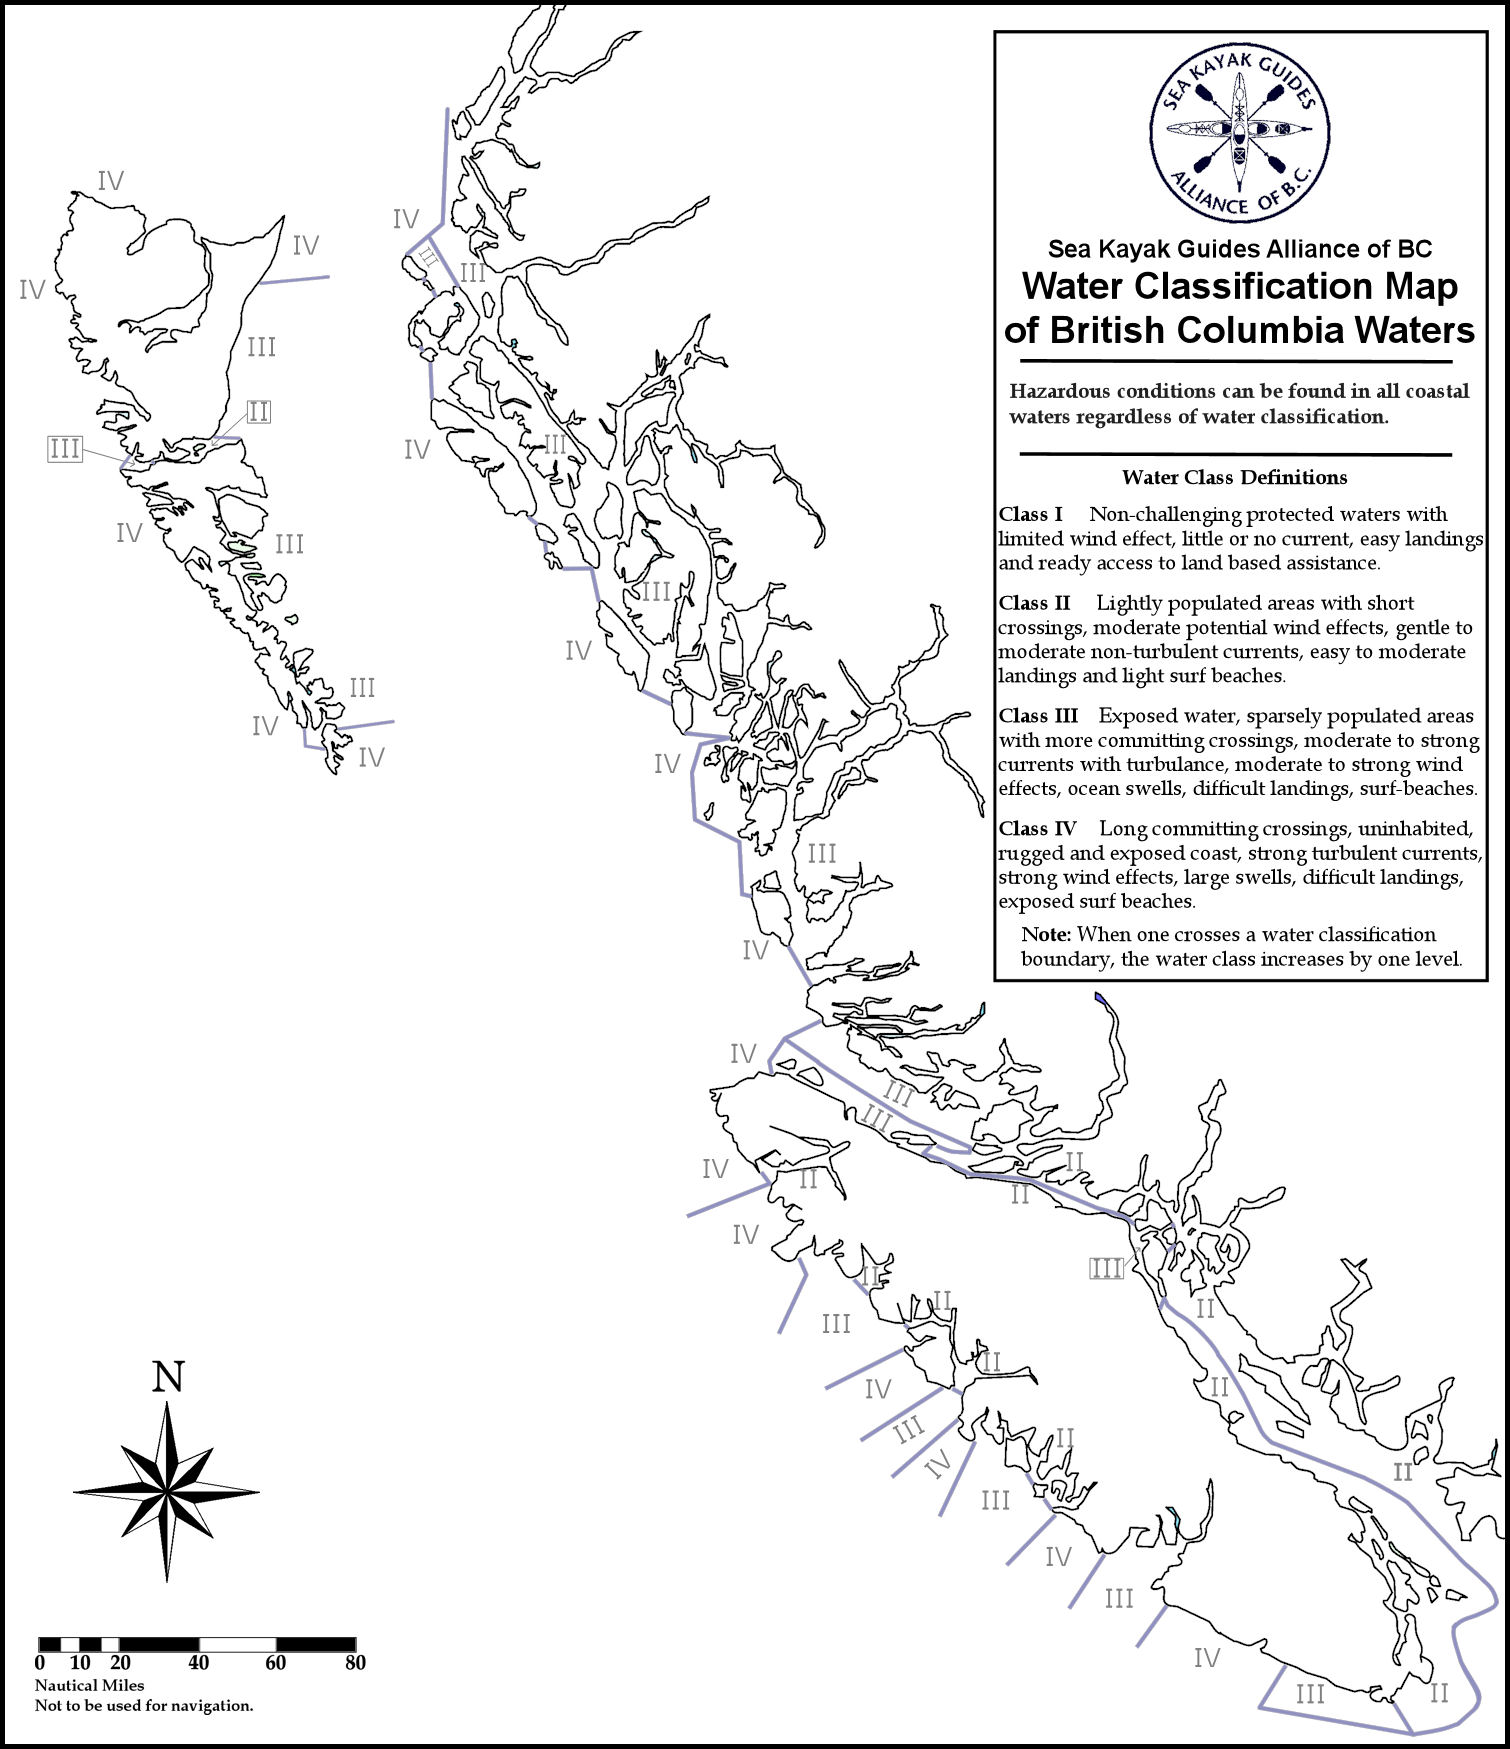 Water Classification Maps • Sea Kayak Guides Alliance of BC